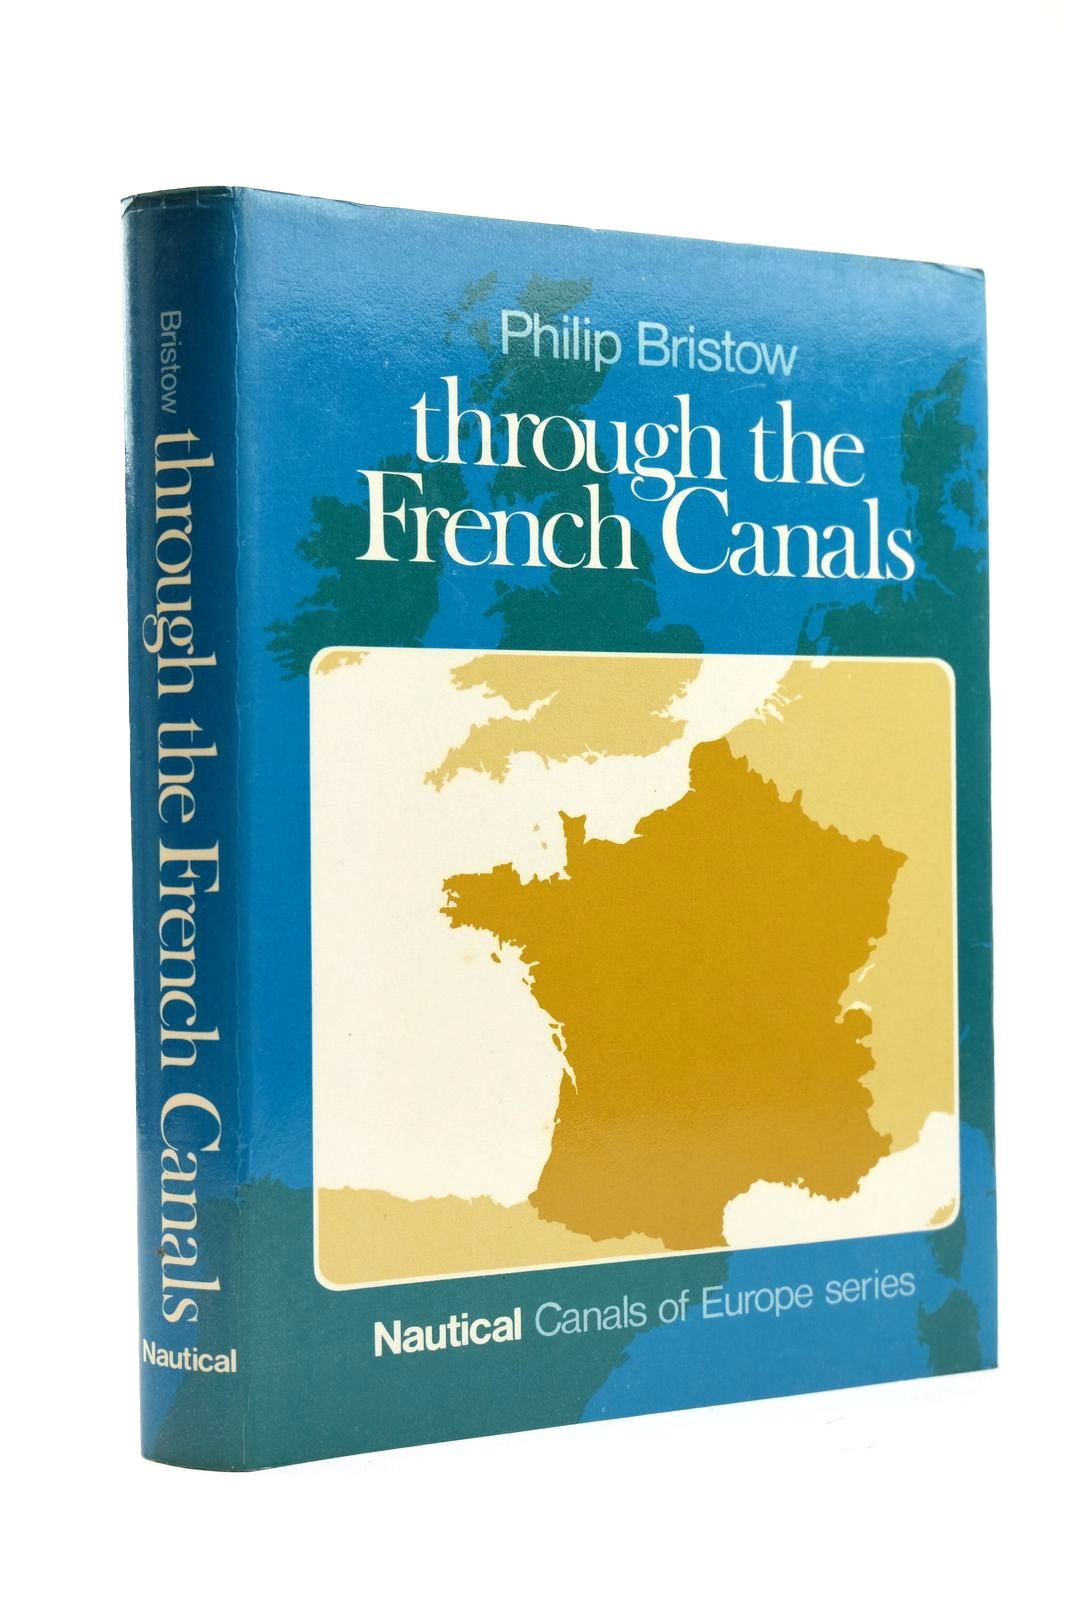 Photo of THROUGH THE FRENCH CANALS written by Bristow, Philip published by Nautical Publishing Company (STOCK CODE: 2131913)  for sale by Stella & Rose's Books